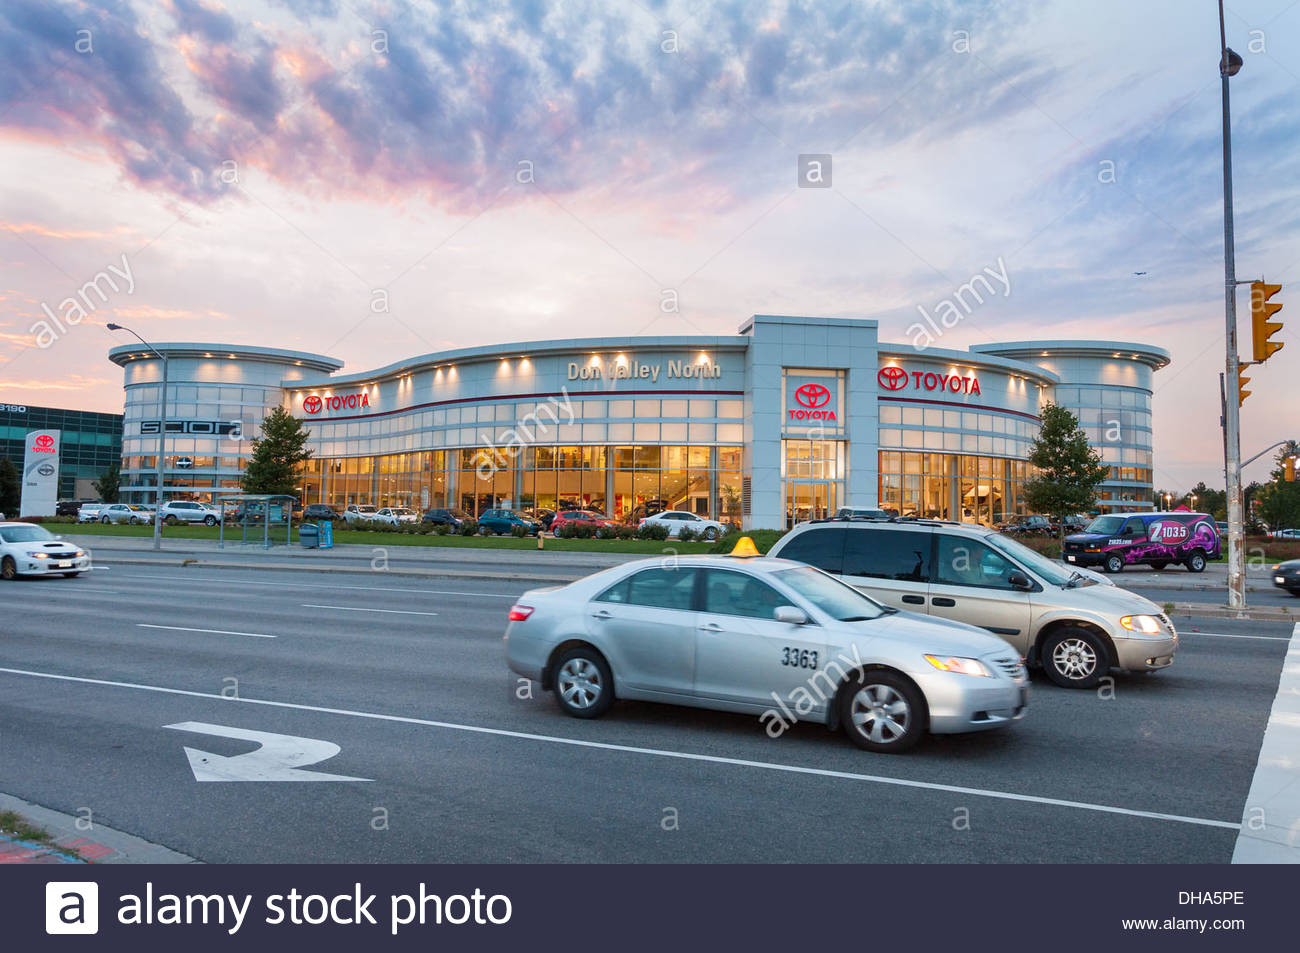 Toyota Dealer In Toronto, Canada. Beautiful Car Dealer In